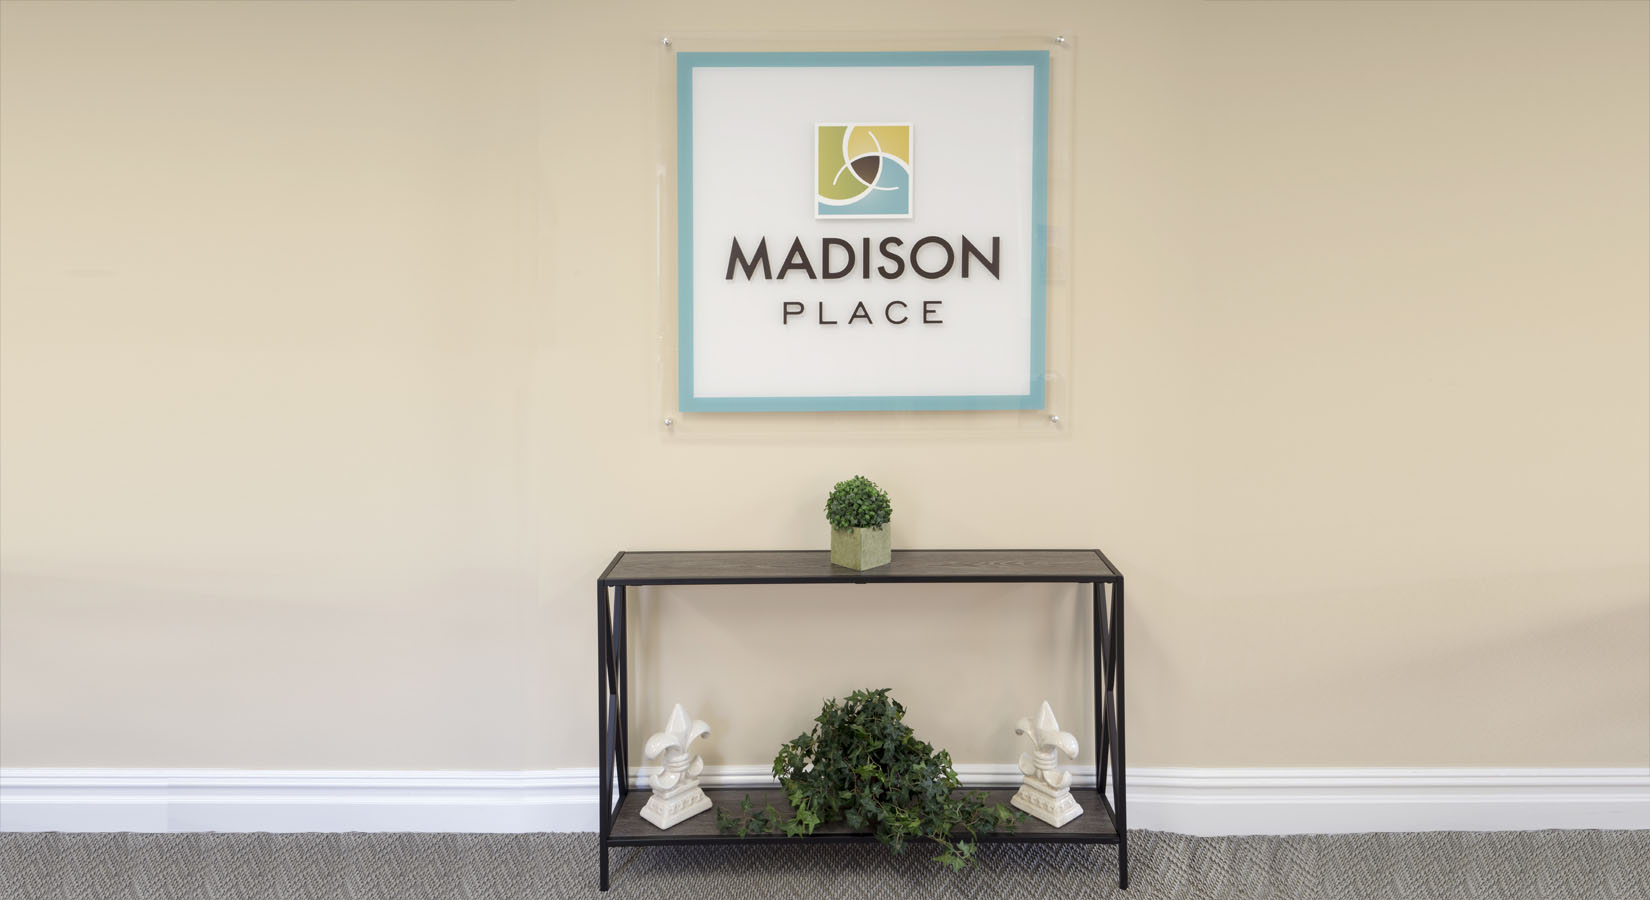 madison-place-sign